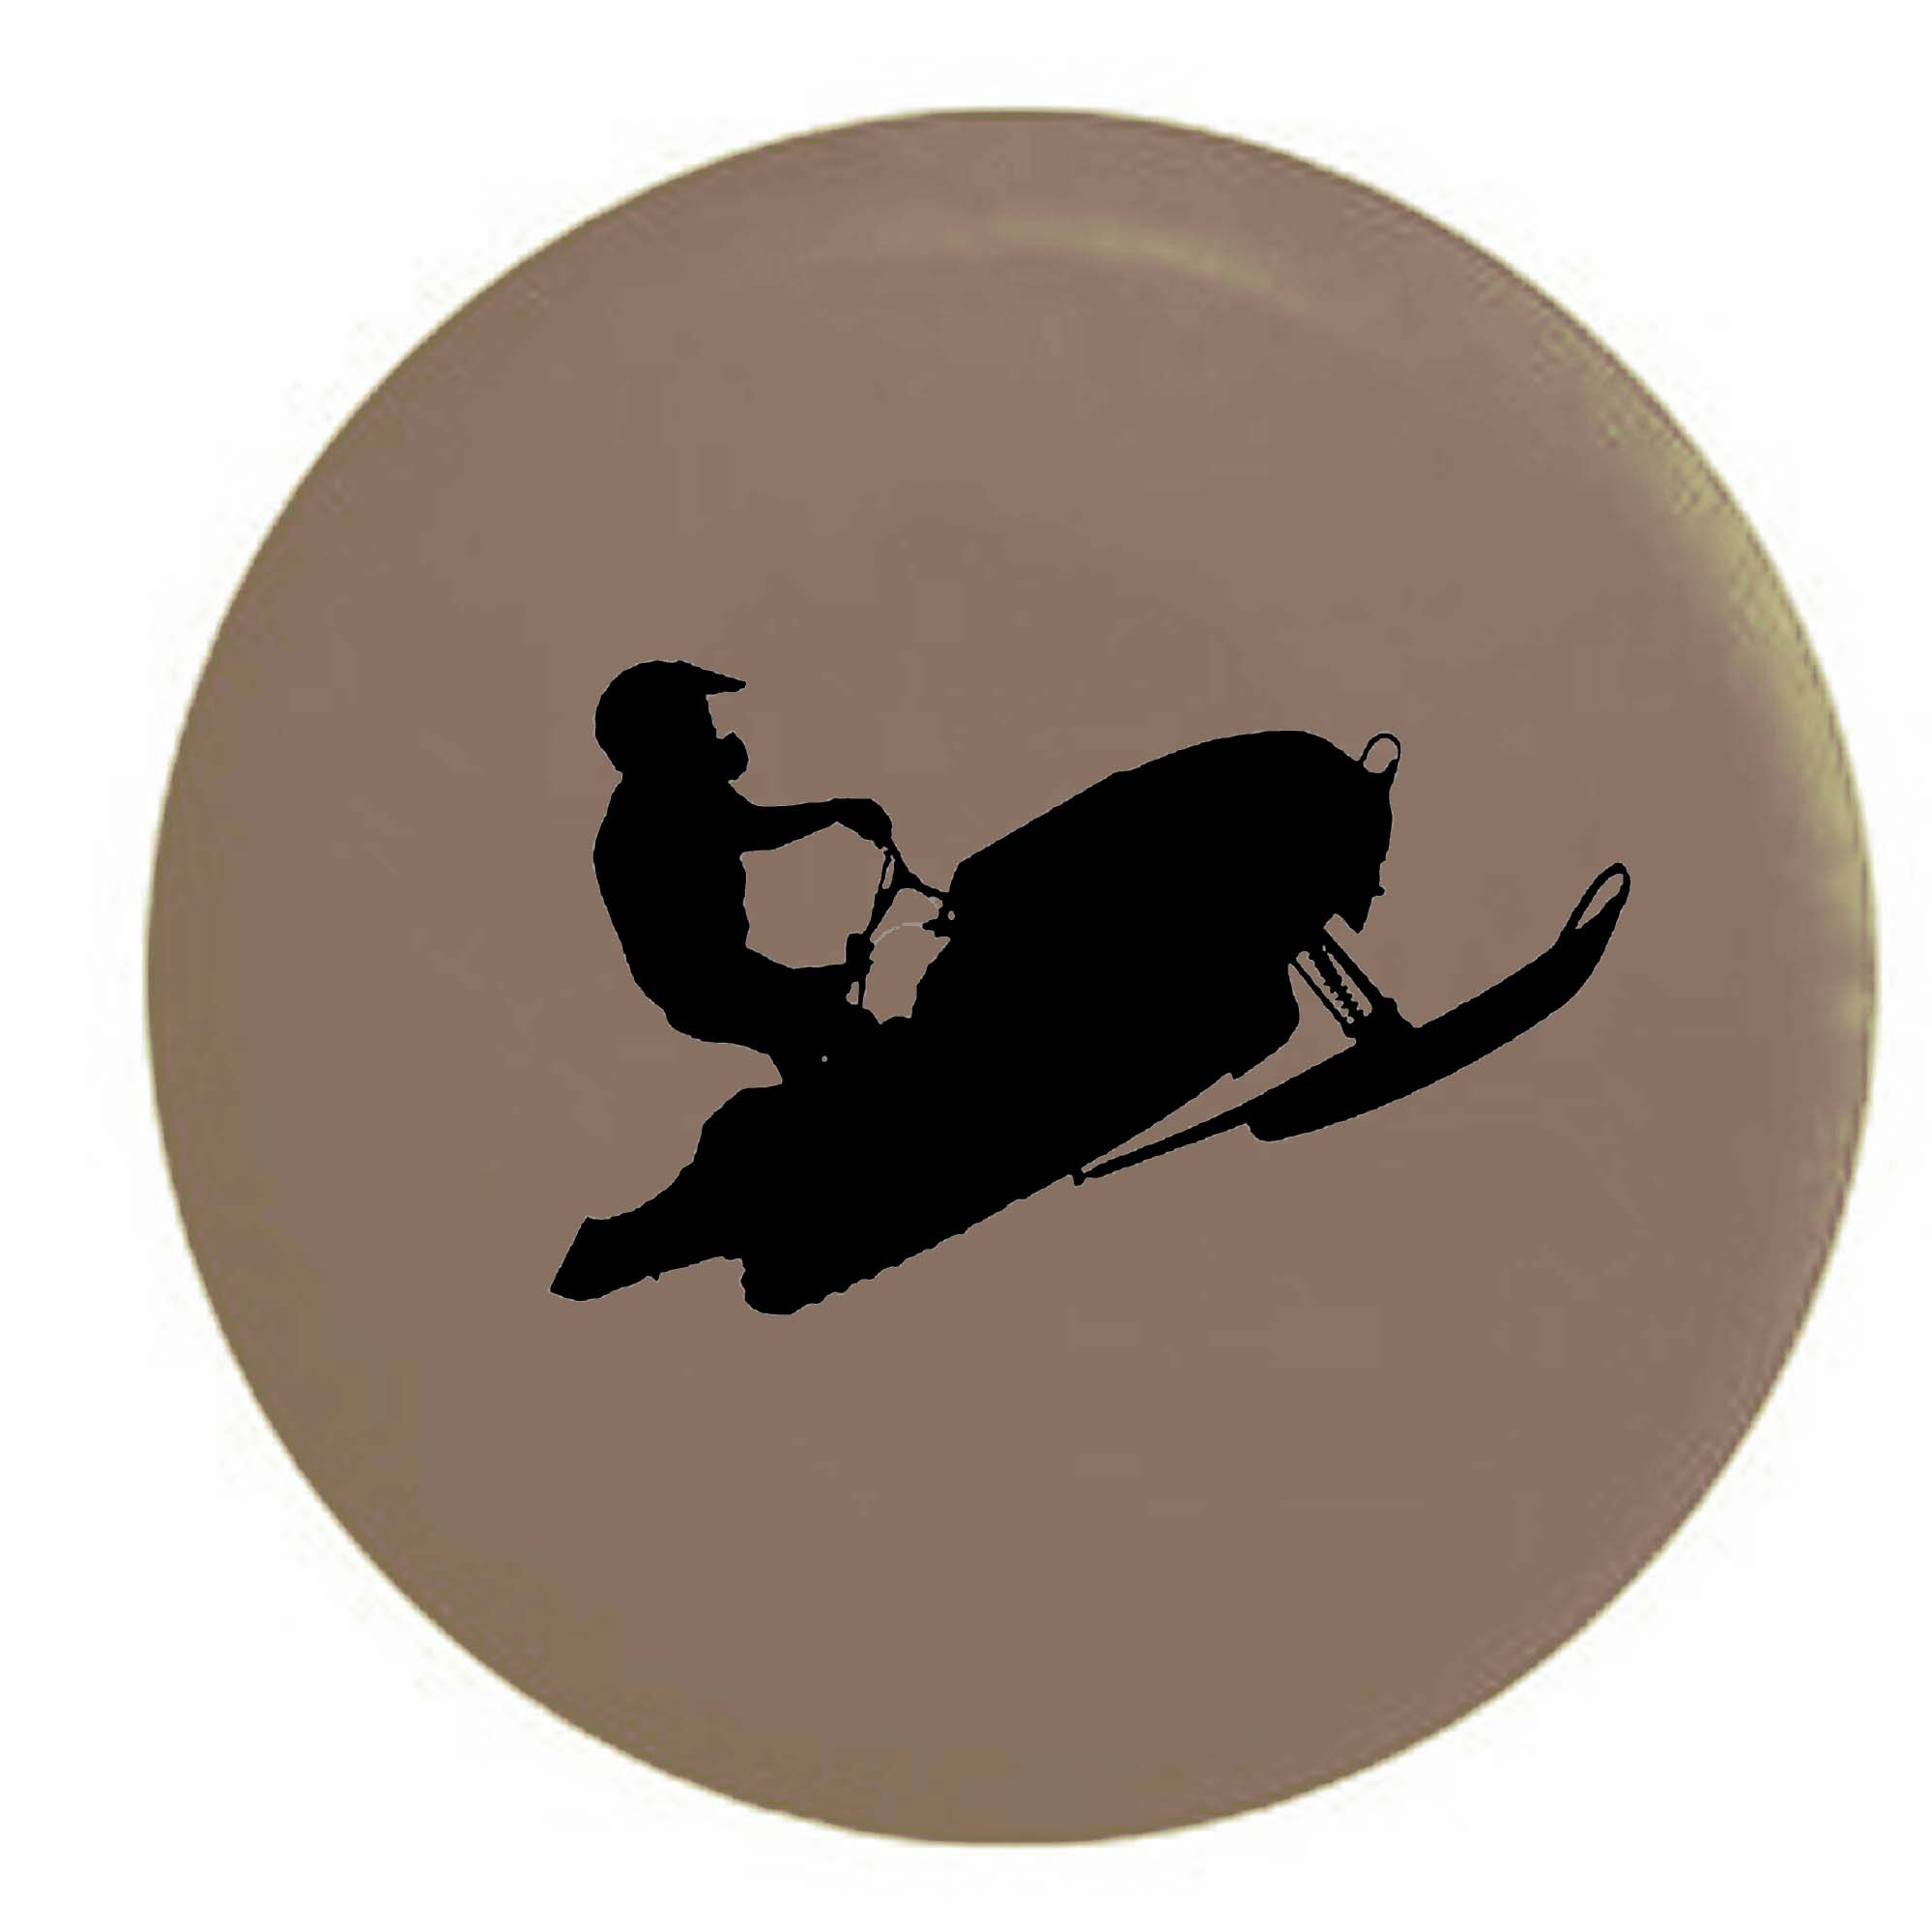 Pike Outdoors Alaska Moose Home State Edition RV Spare Tire Cover OEM Vinyl White 29 in